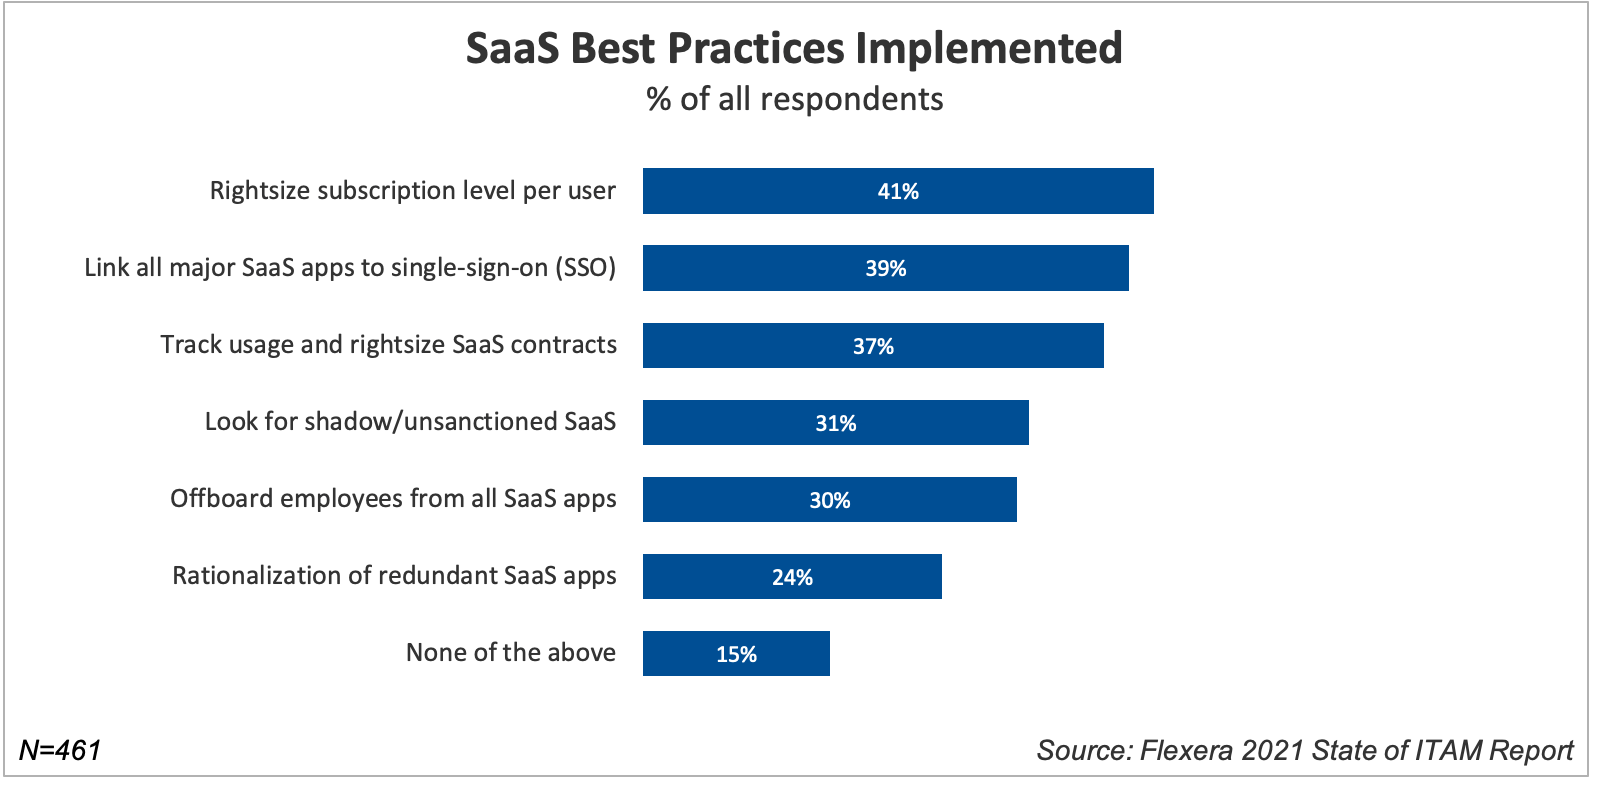 SaaS Best Practices Implemented